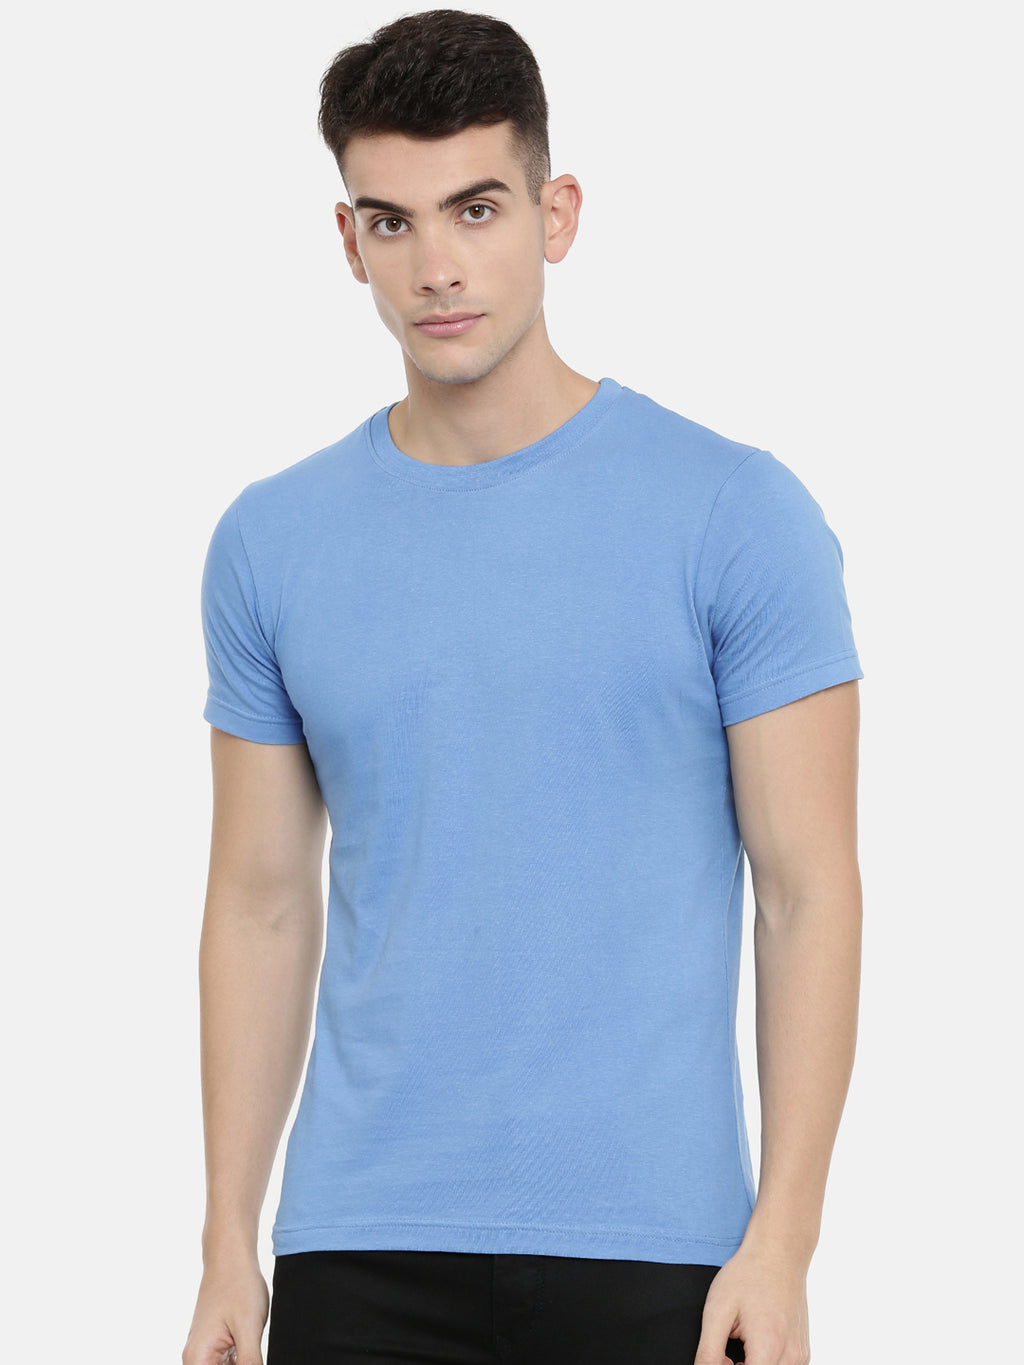 Sky Blue Round Neck Half Sleeve T-shirt Baromin